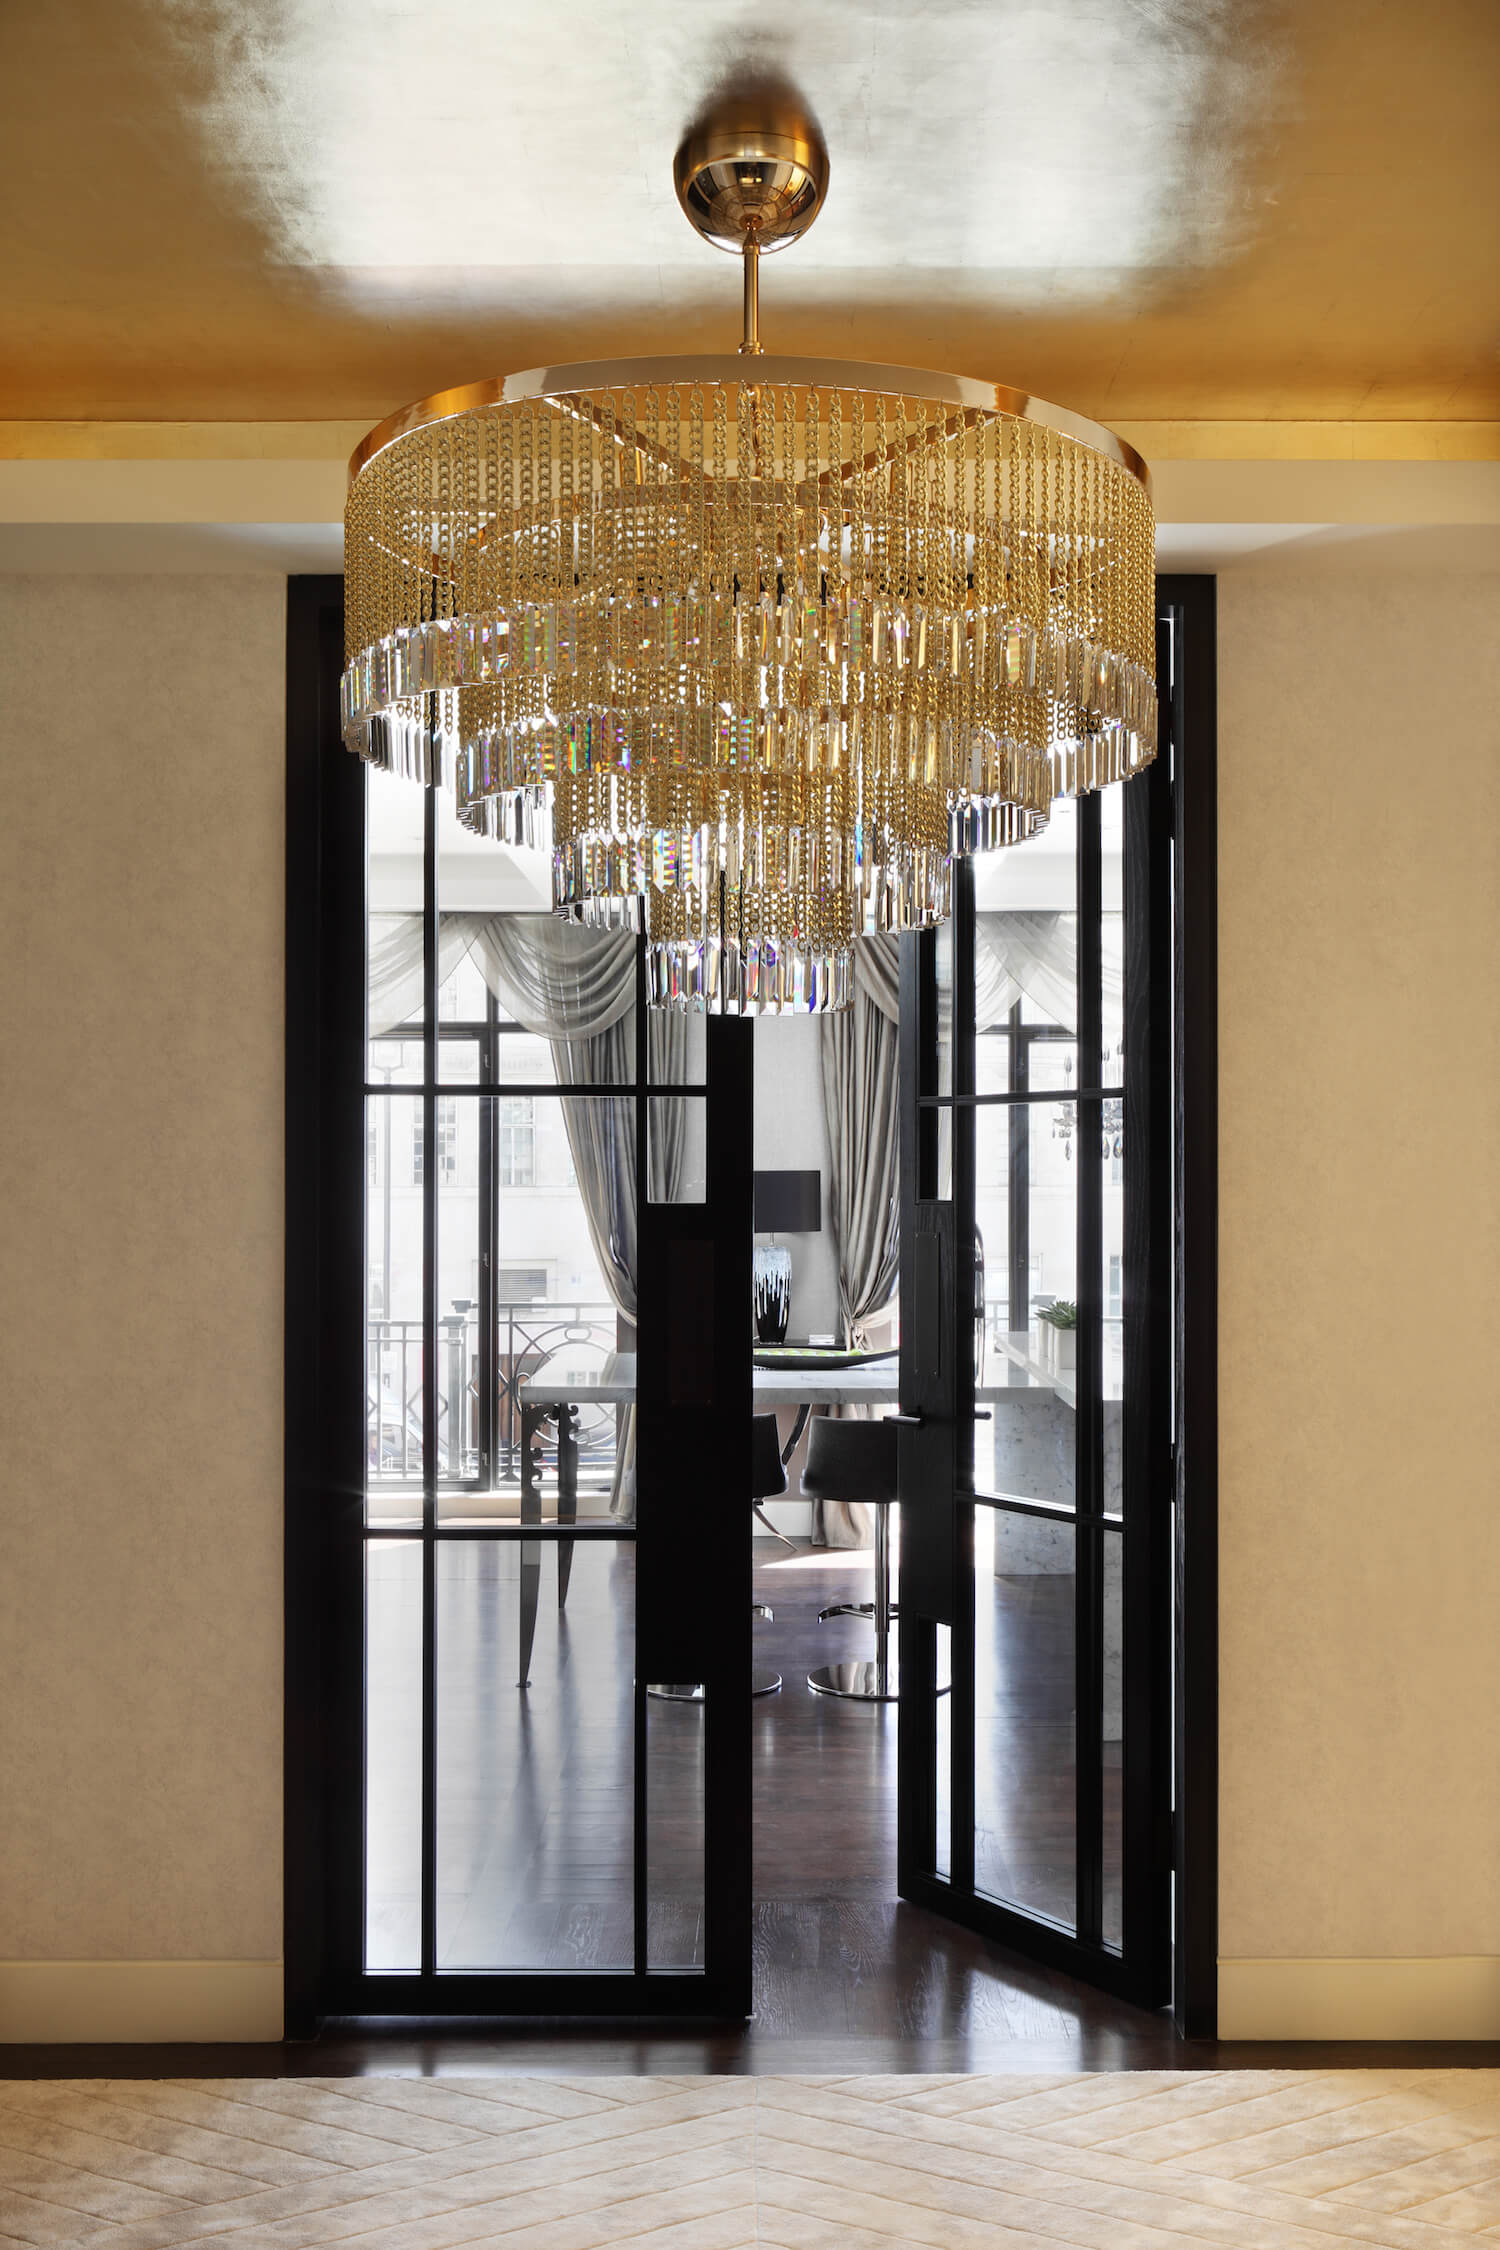 Handmade in Italy, an oversized chandelier adorned with rows of gold chains and crystal pendants sets a bold, opulent tone for the rest of the apartment, right in the entryway.